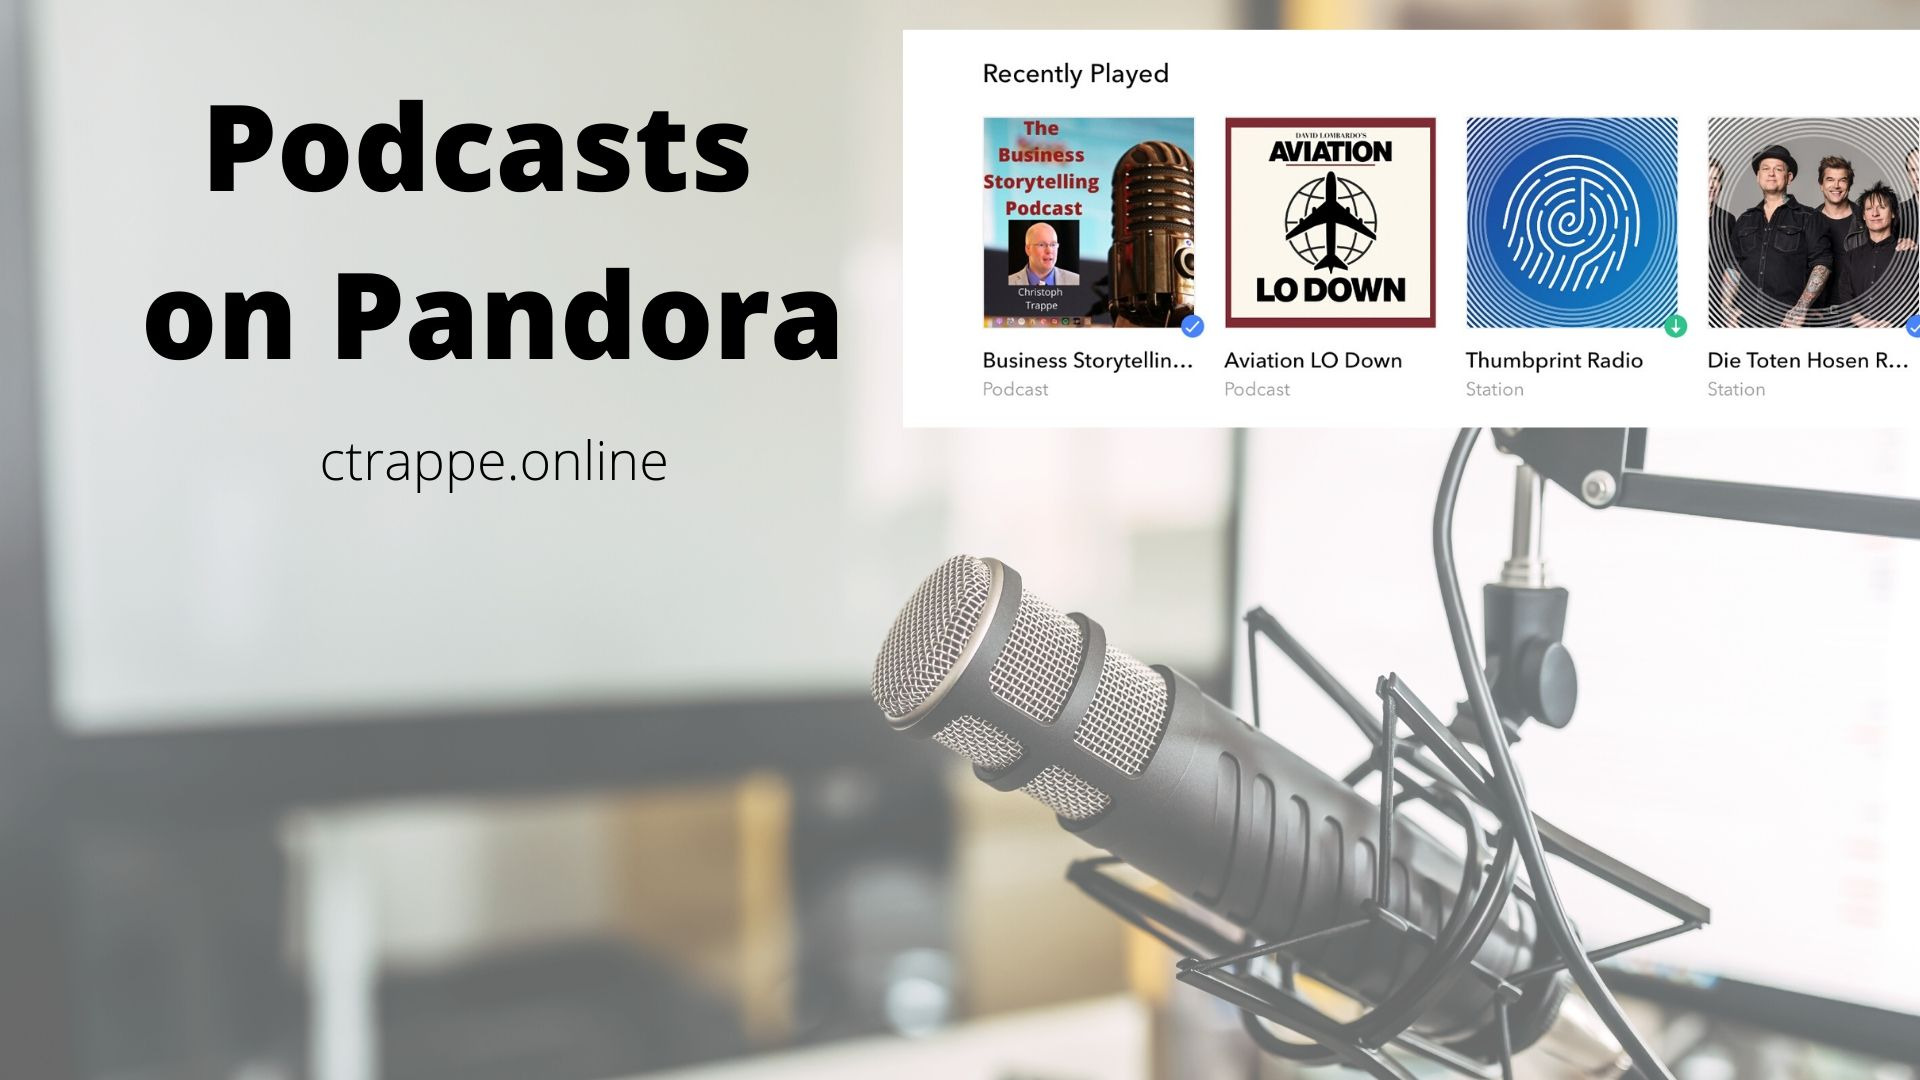 Podcasts on Pandora